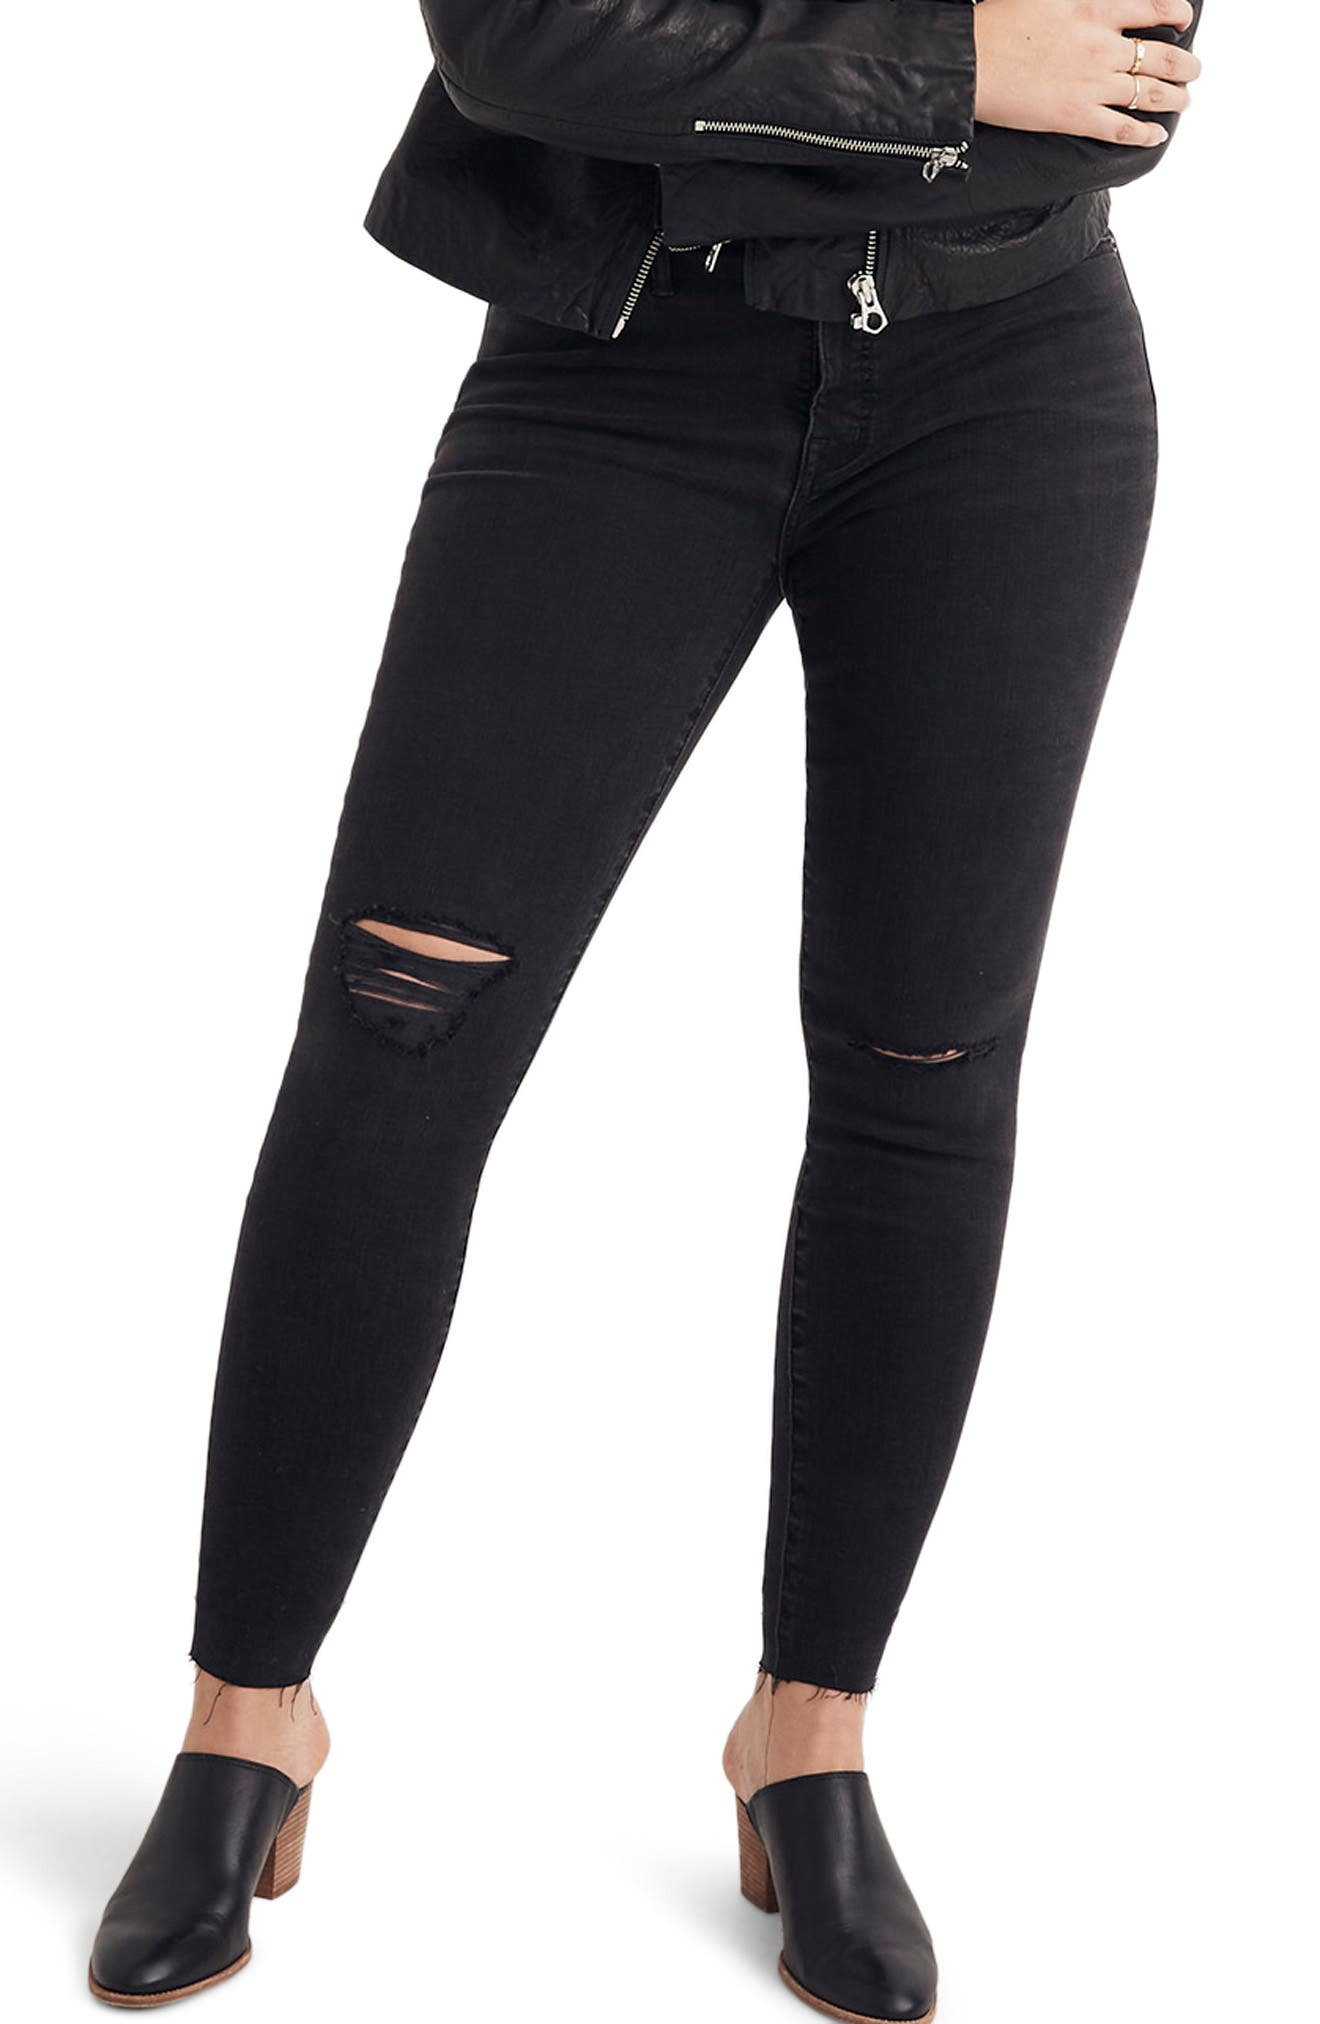 MADEWELL, 9-Inch High Waist Skinny Jeans, Alternate thumbnail 2, color, BLACK SEA